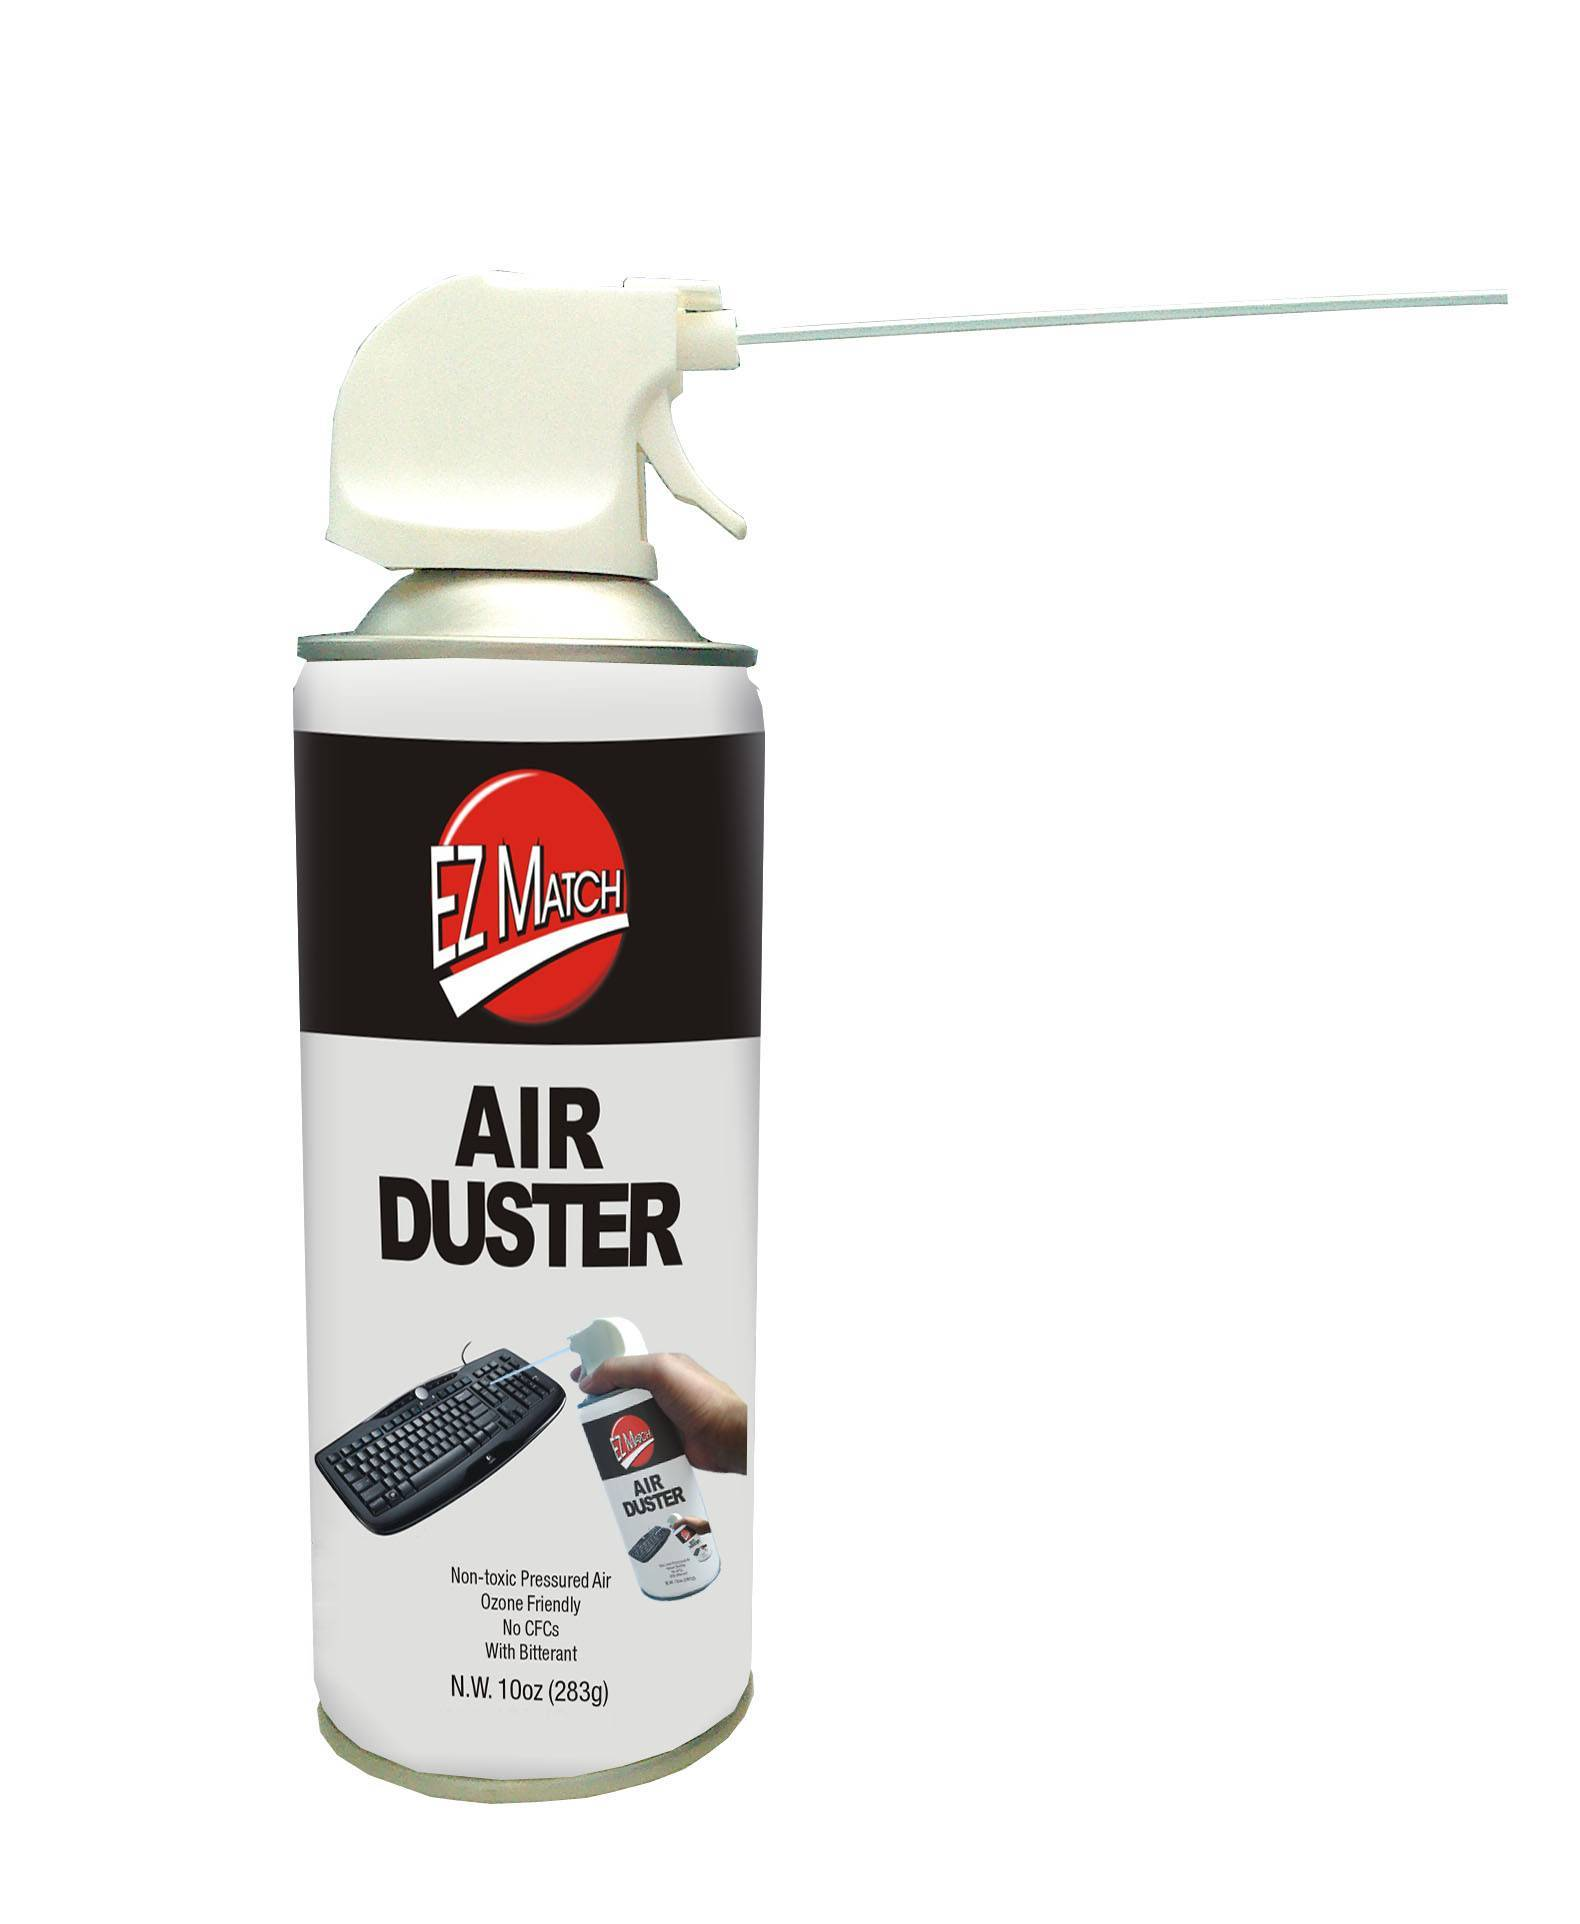 best air duster for computer metro vacuum ed500 datavac electric duster blows very xpower a2. Black Bedroom Furniture Sets. Home Design Ideas